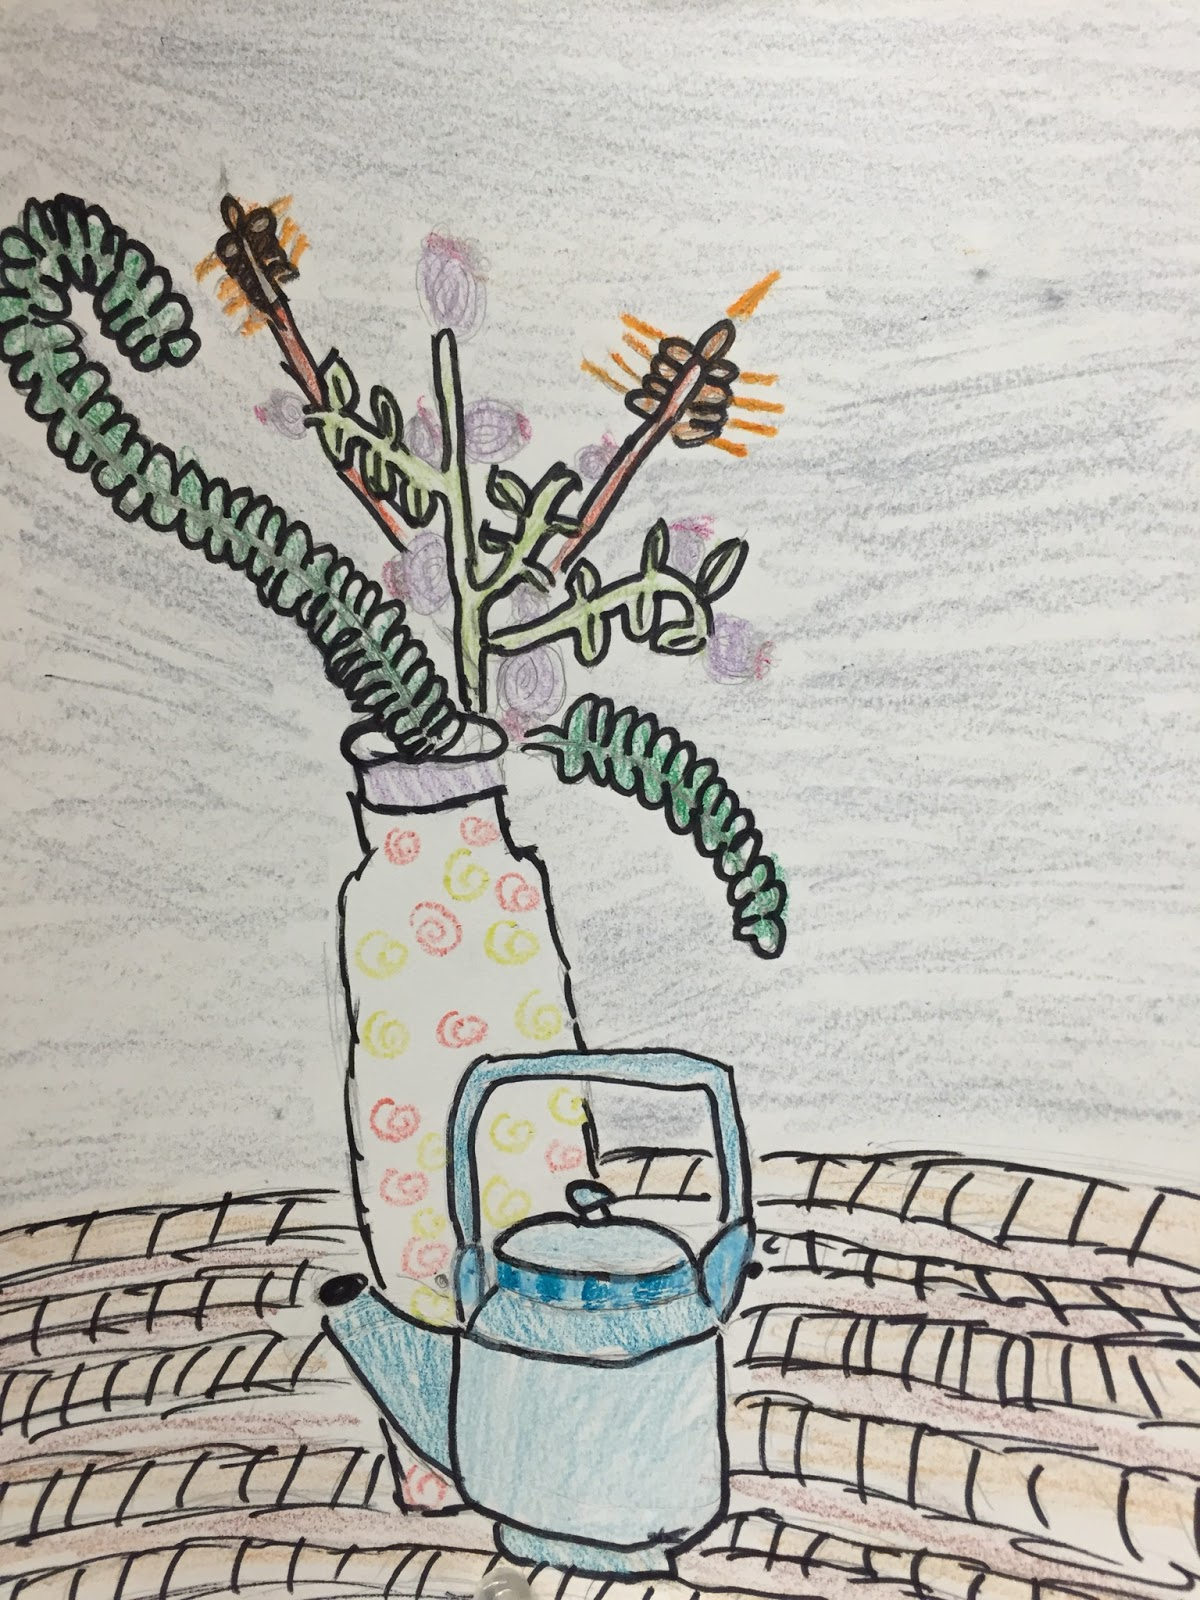 Drawn vase curved Angled five to in line